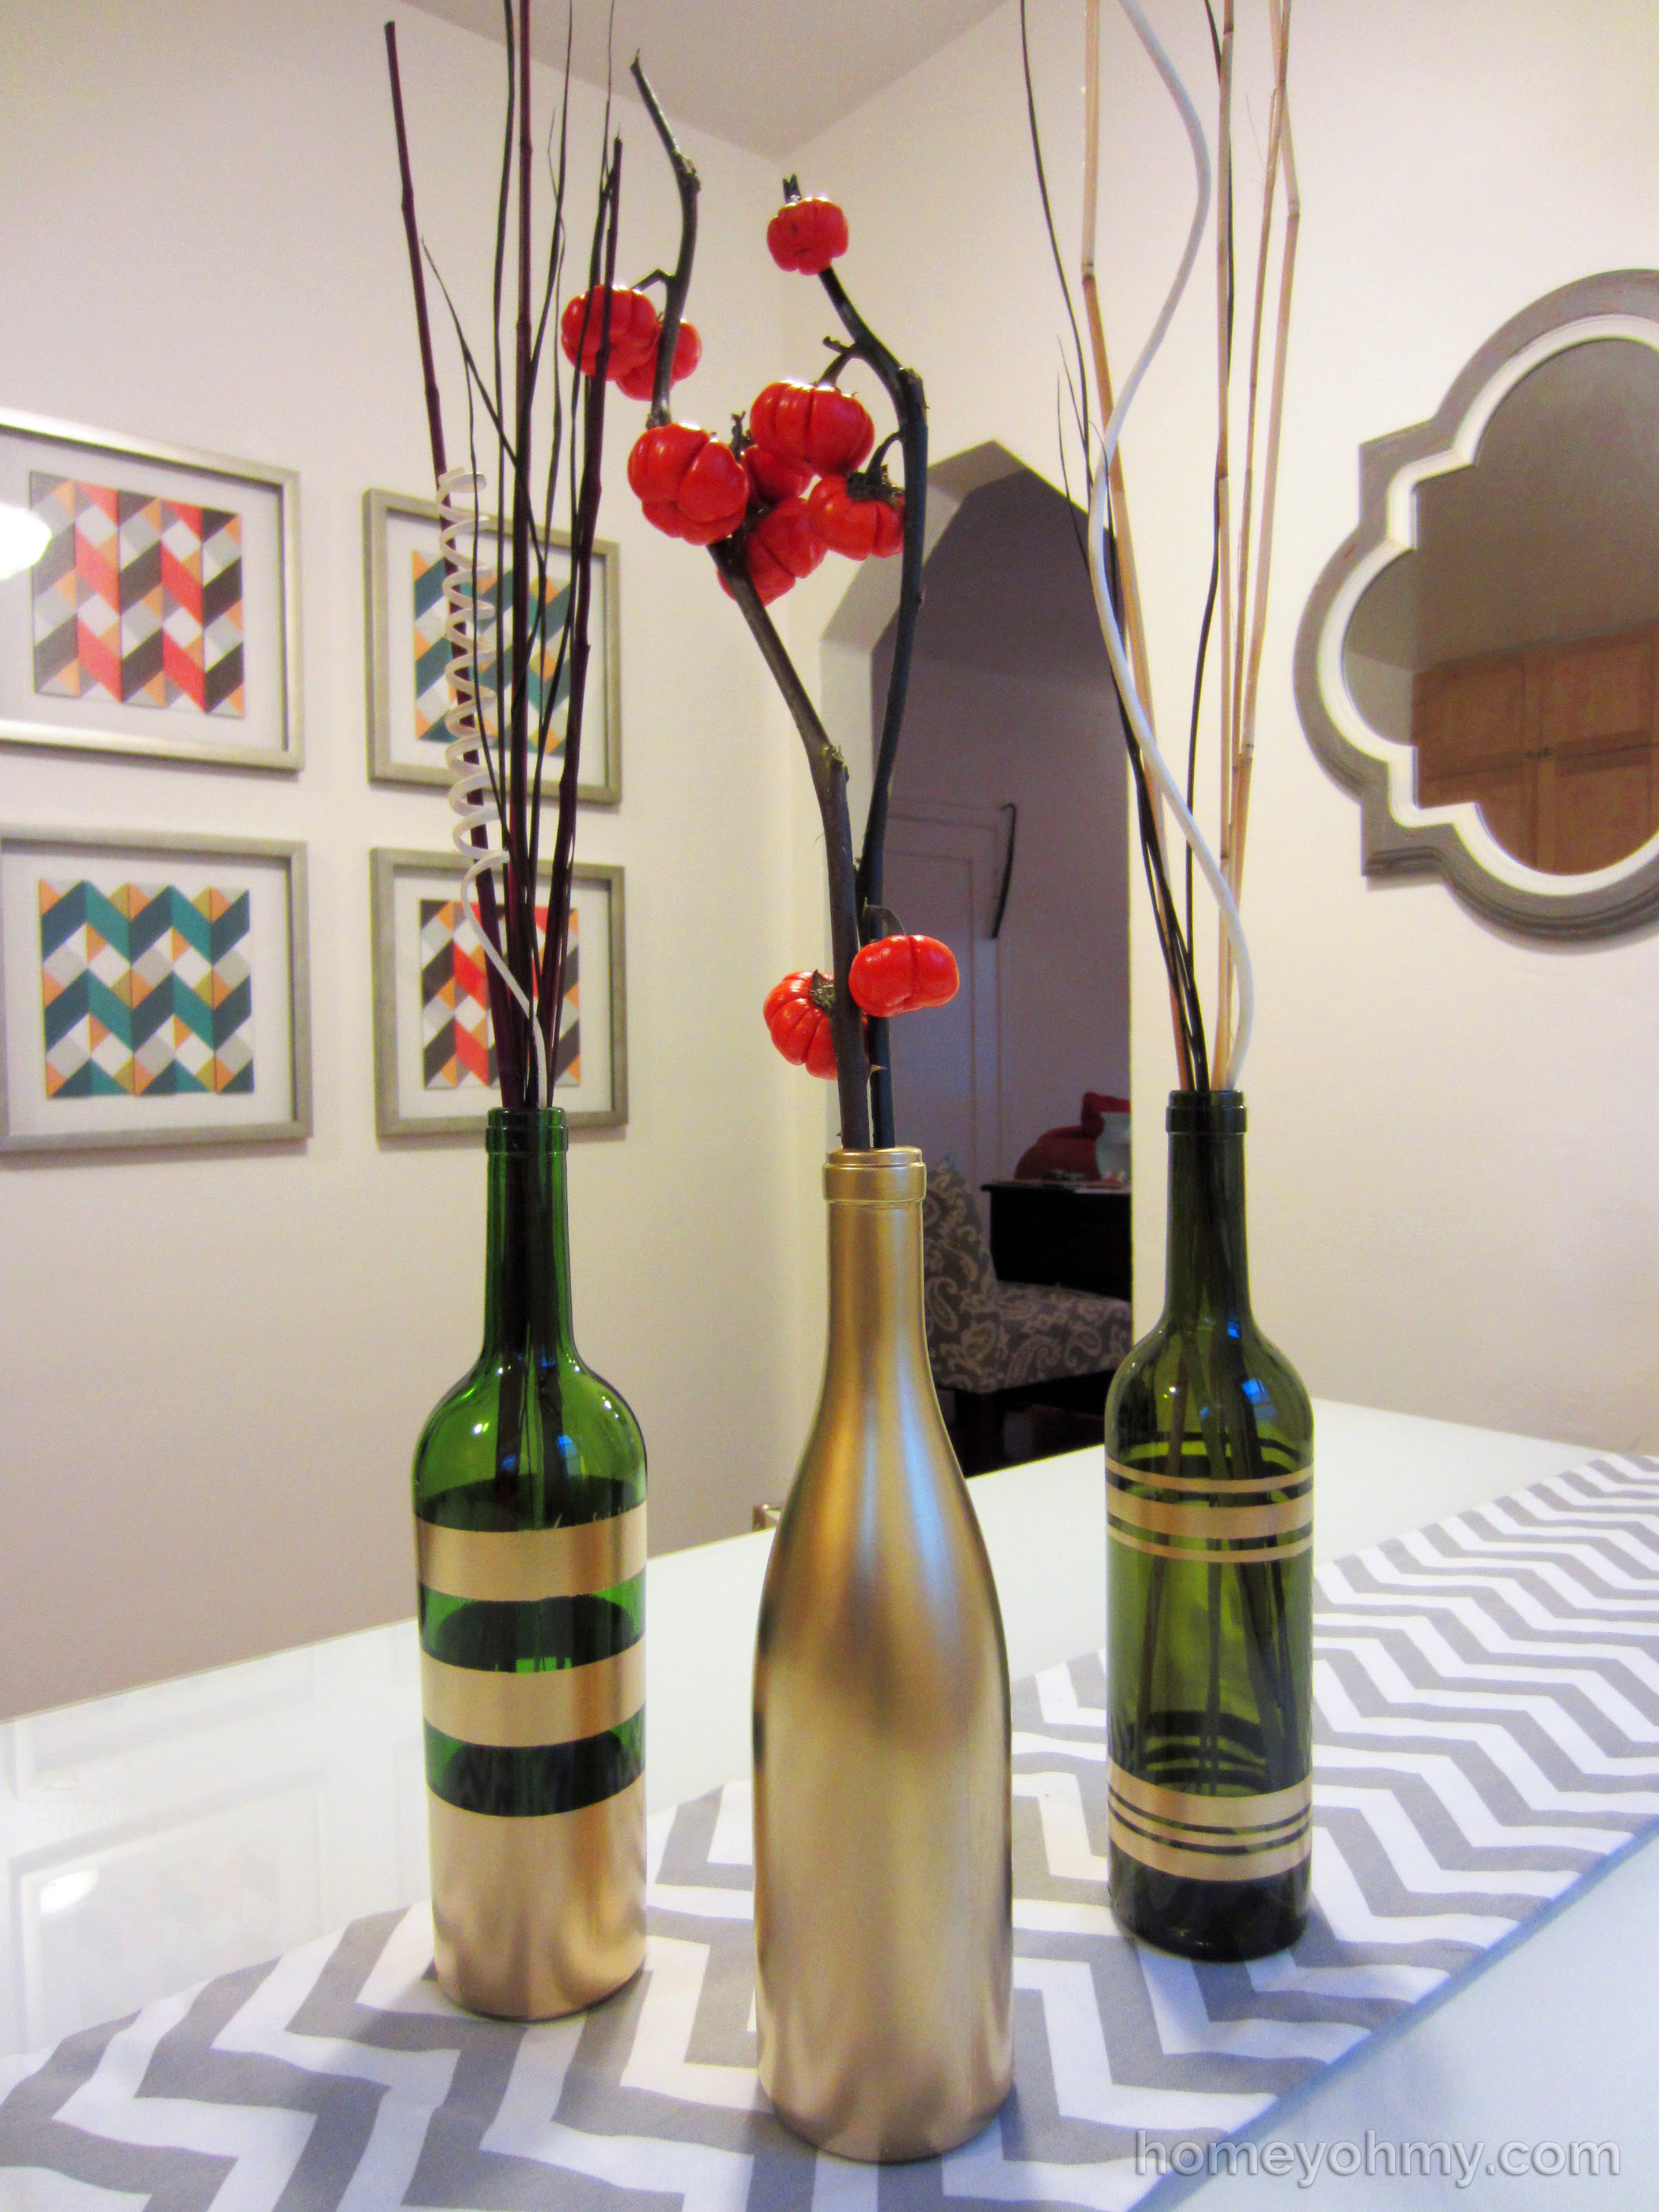 Diy Spray Painted Wine Bottles For Fall Decorating Homey Oh My